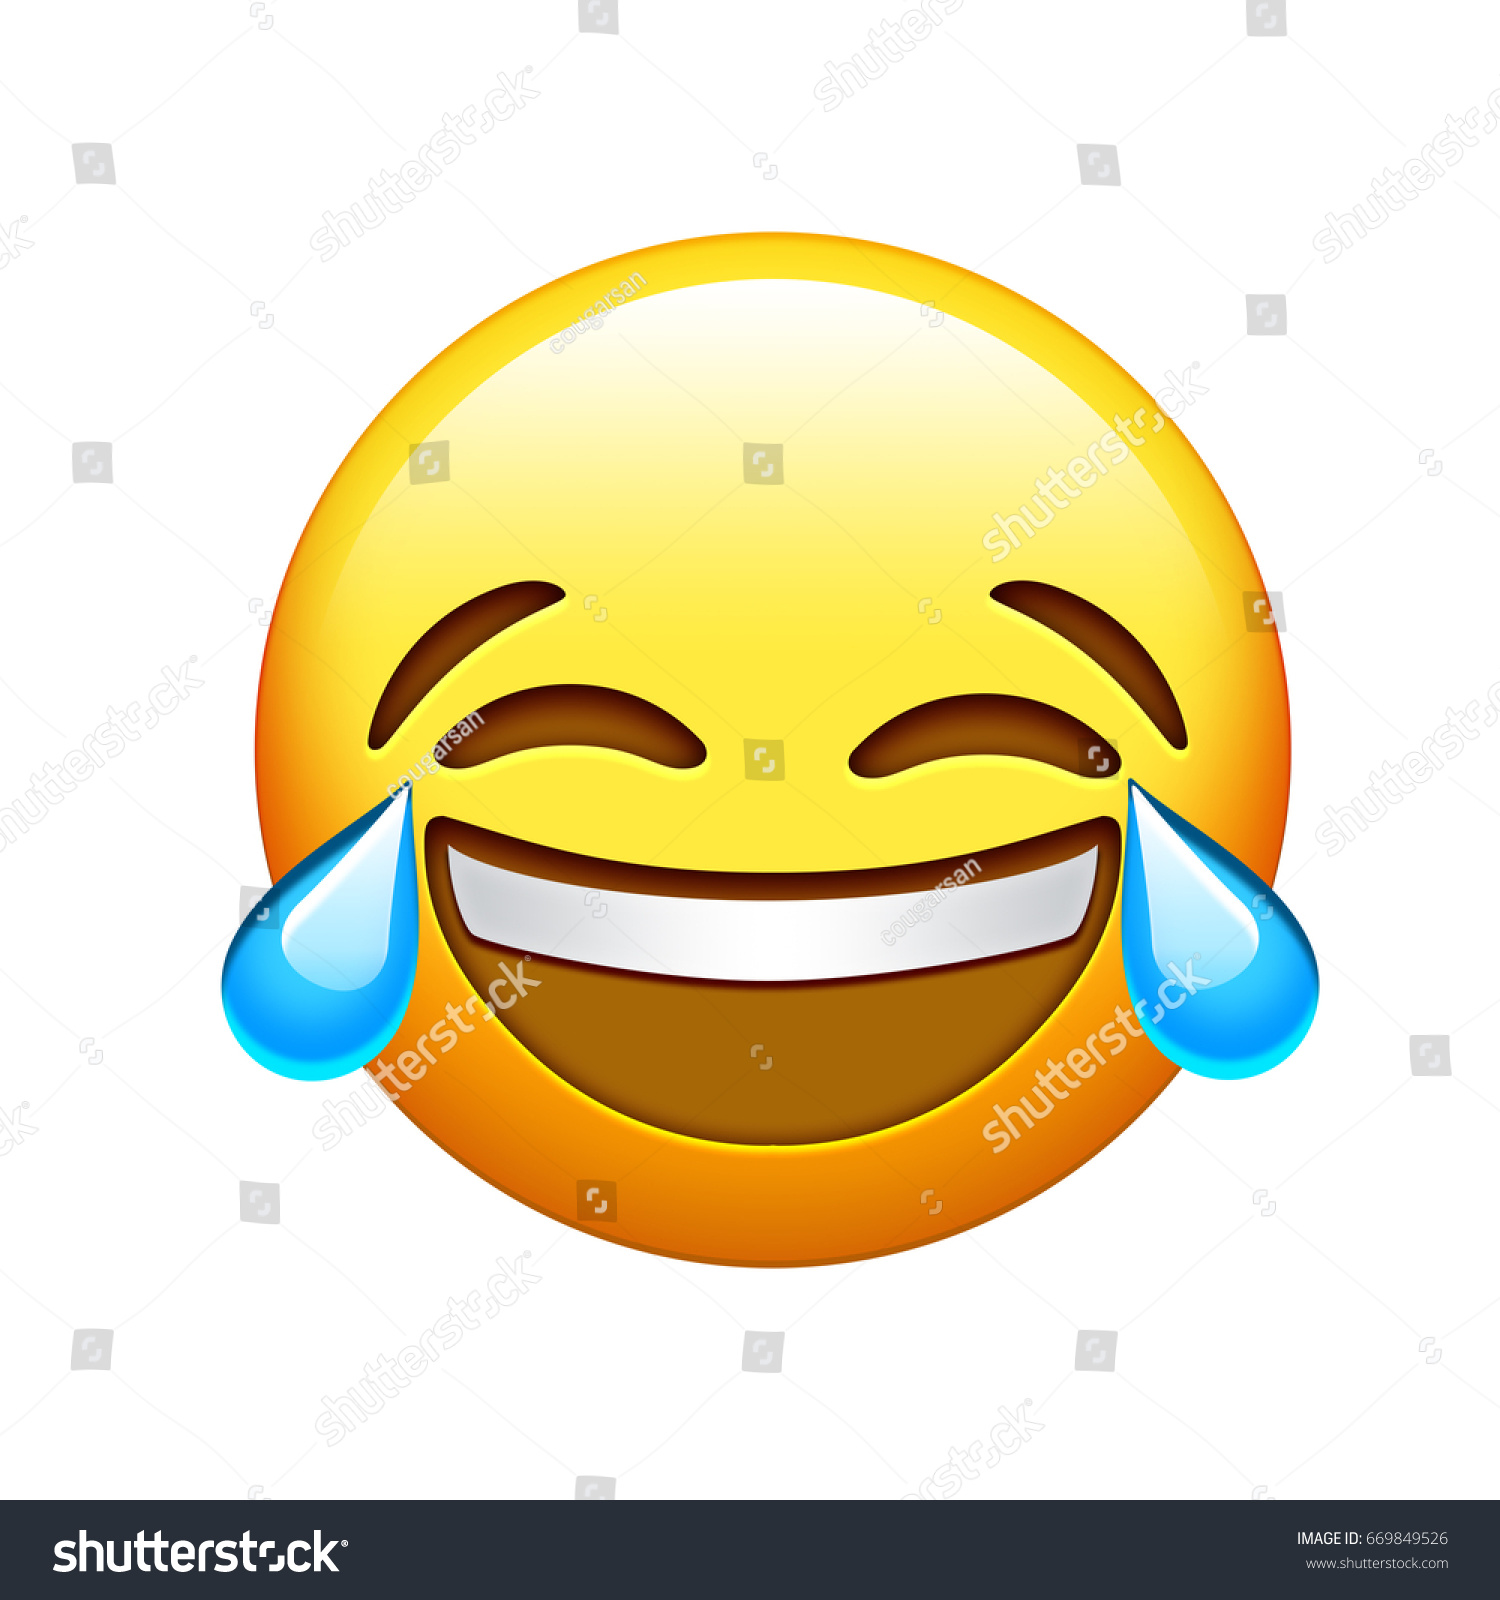 stock-photo-the-emoji-yellow-face-lol-laugh-and-crying-tear-icon-669849526.jpg